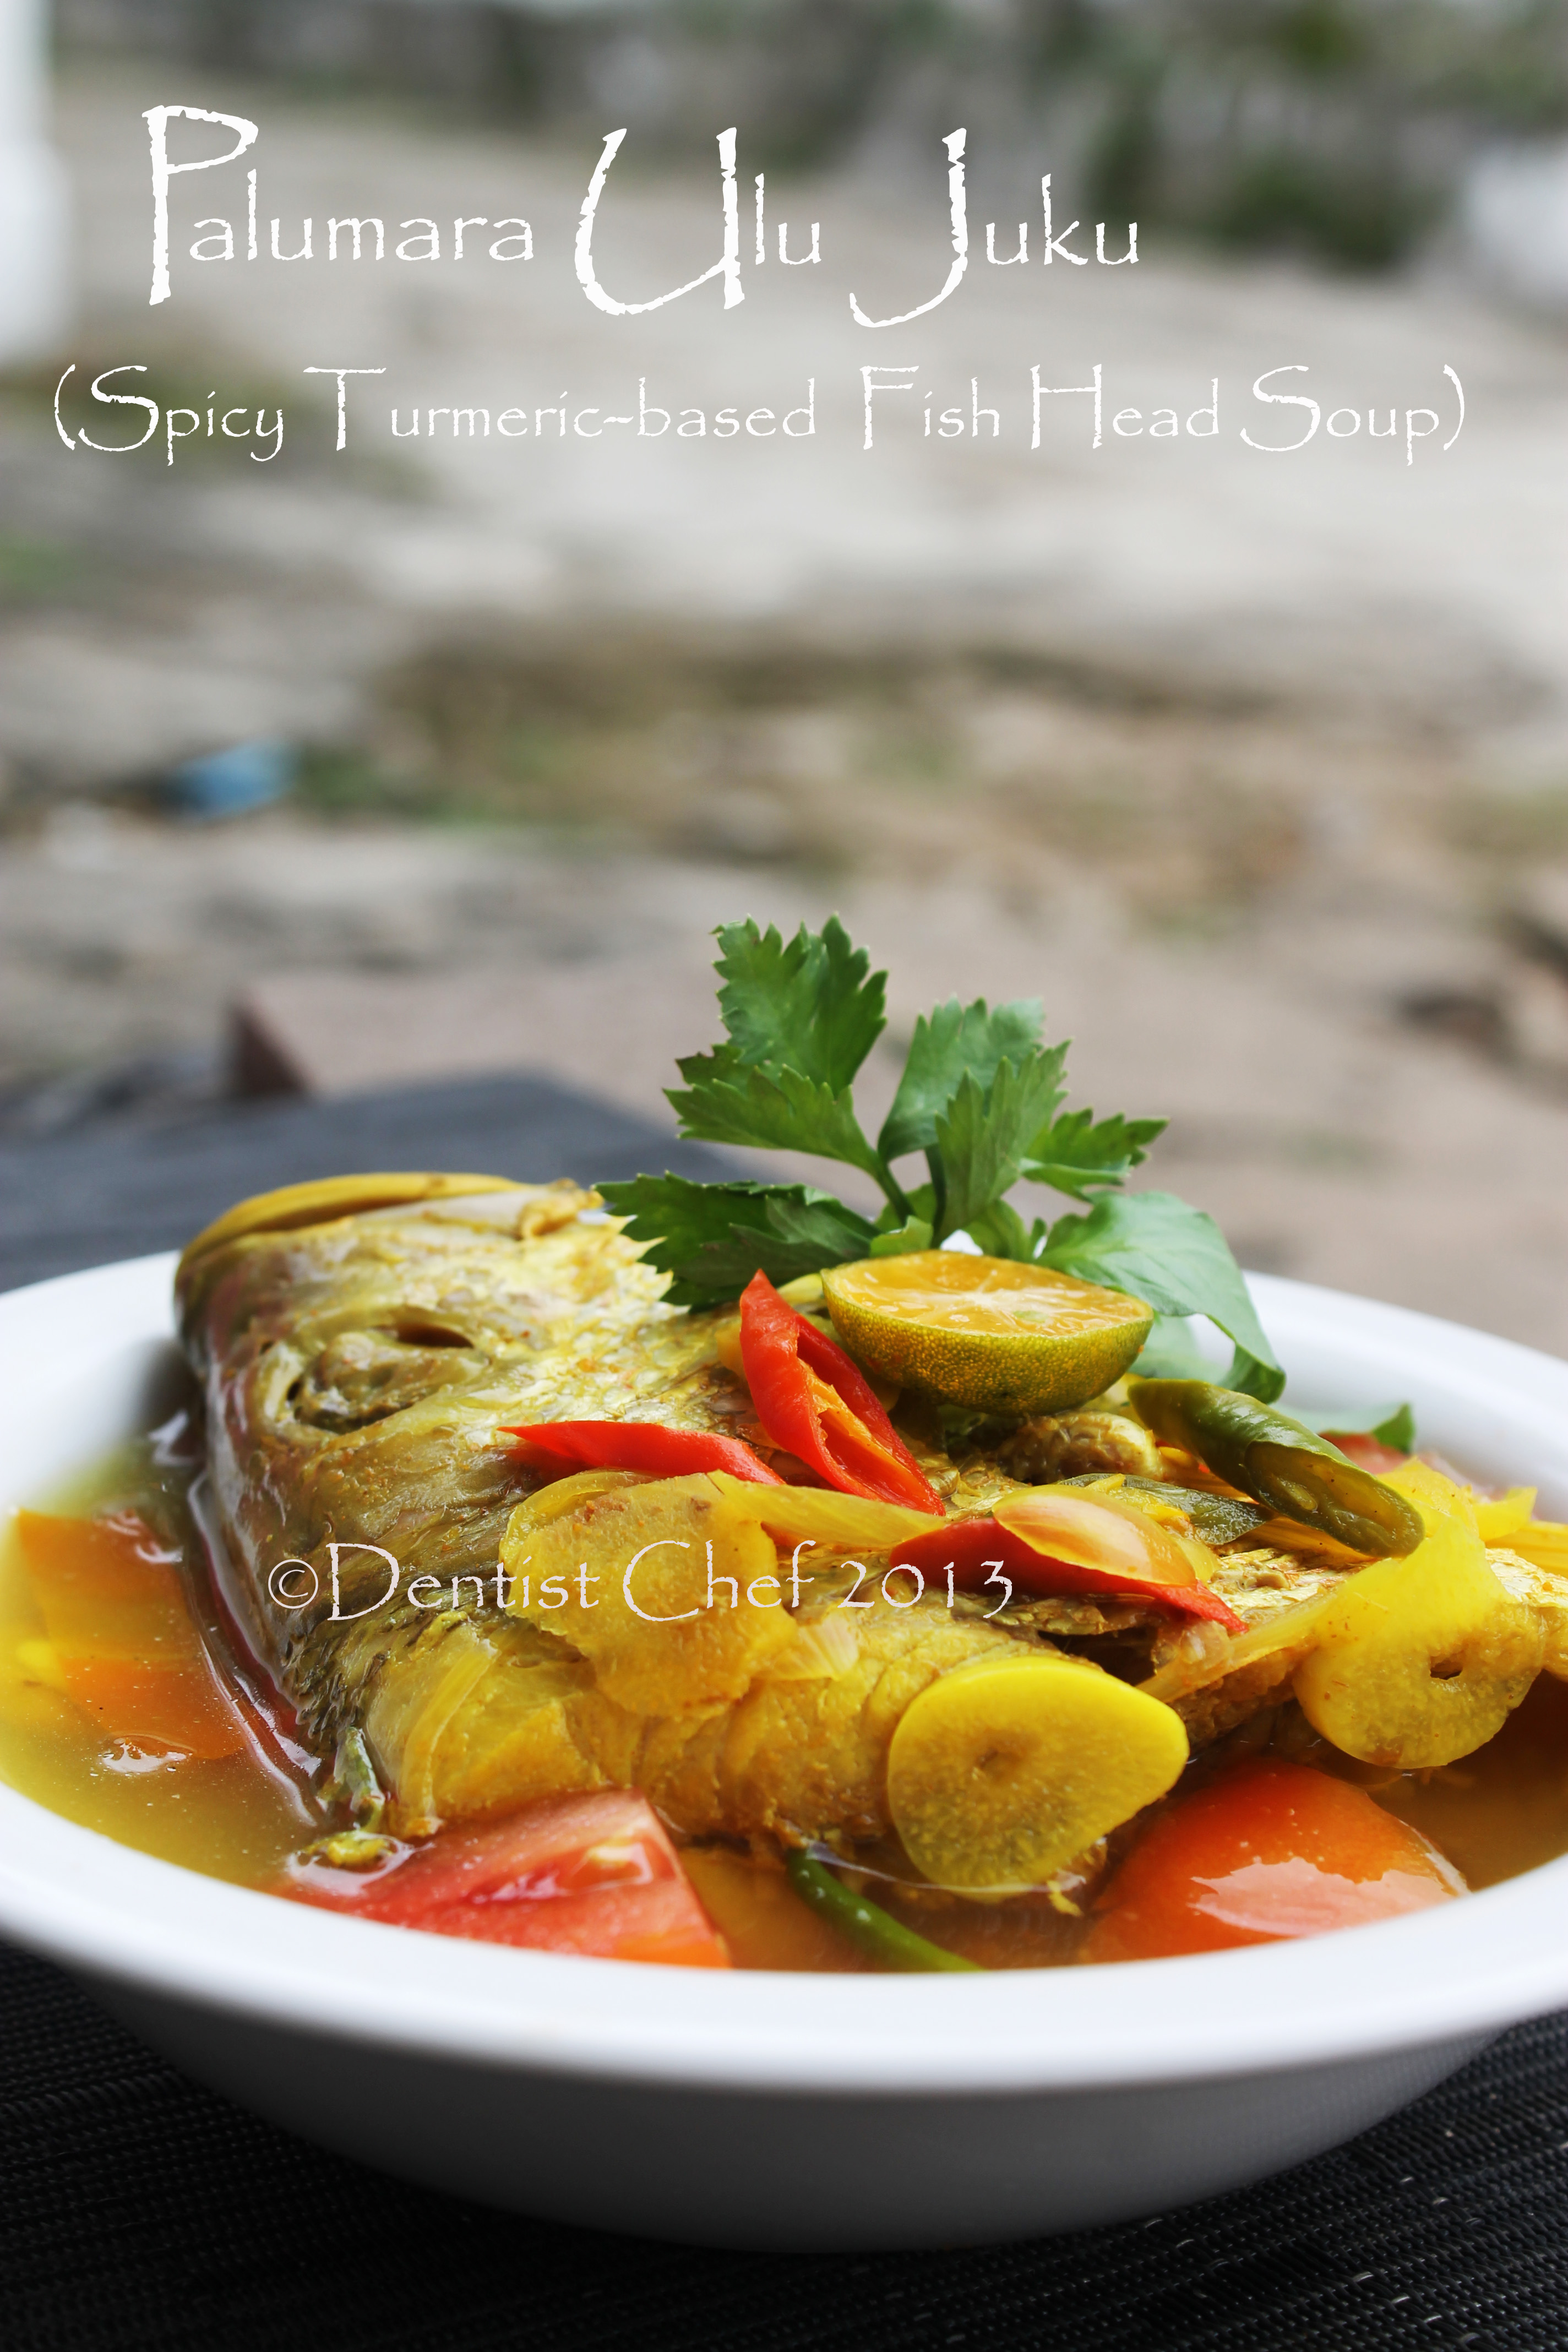 Resep palumara ulu juku spicy red snapper fish soup for Fish head soup recipe